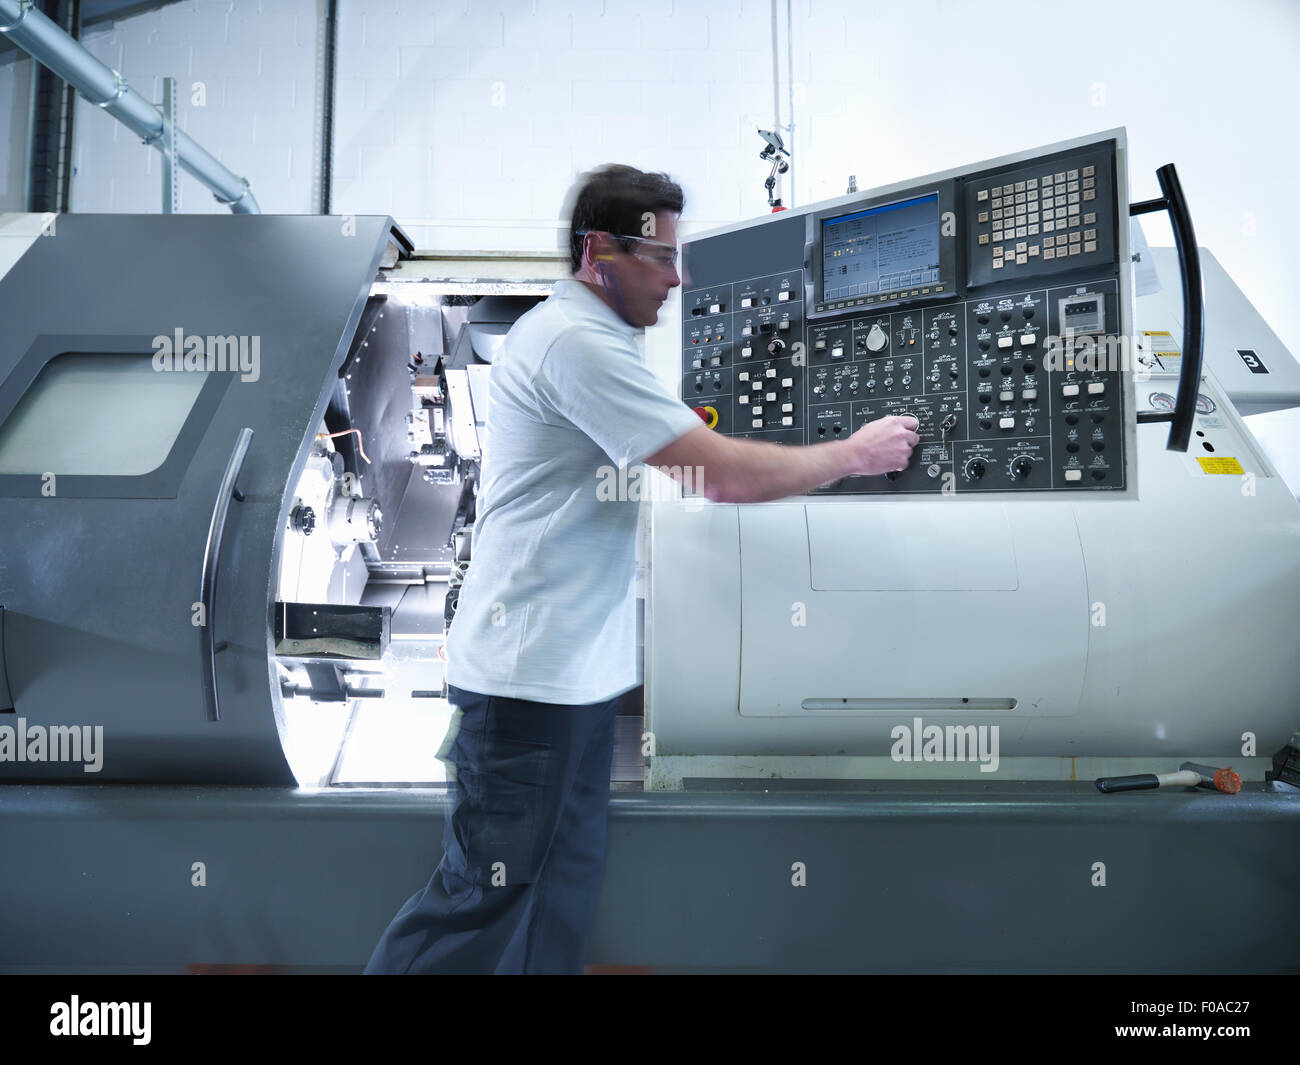 Engineer operating CNC lathe in factory - Stock Image